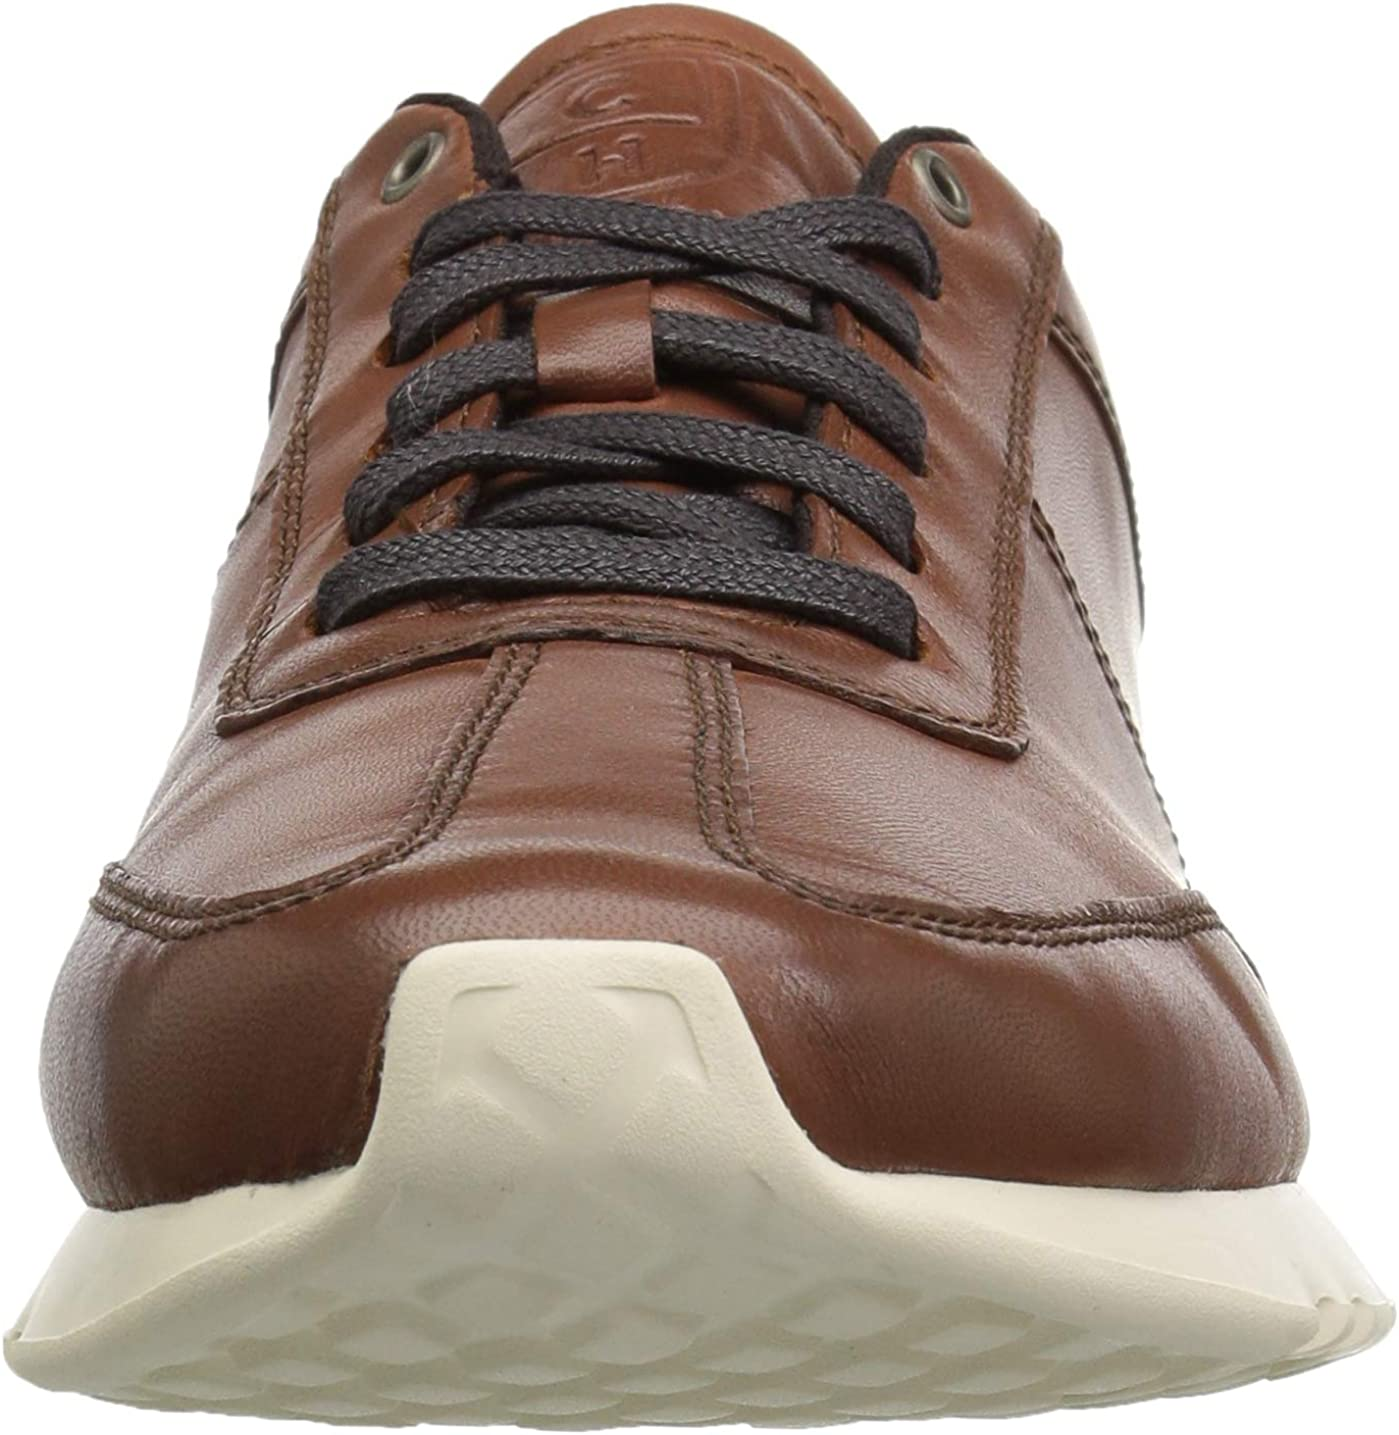 Cole Haan Men's Grand Crosscourt Ii Sneaker British Tan